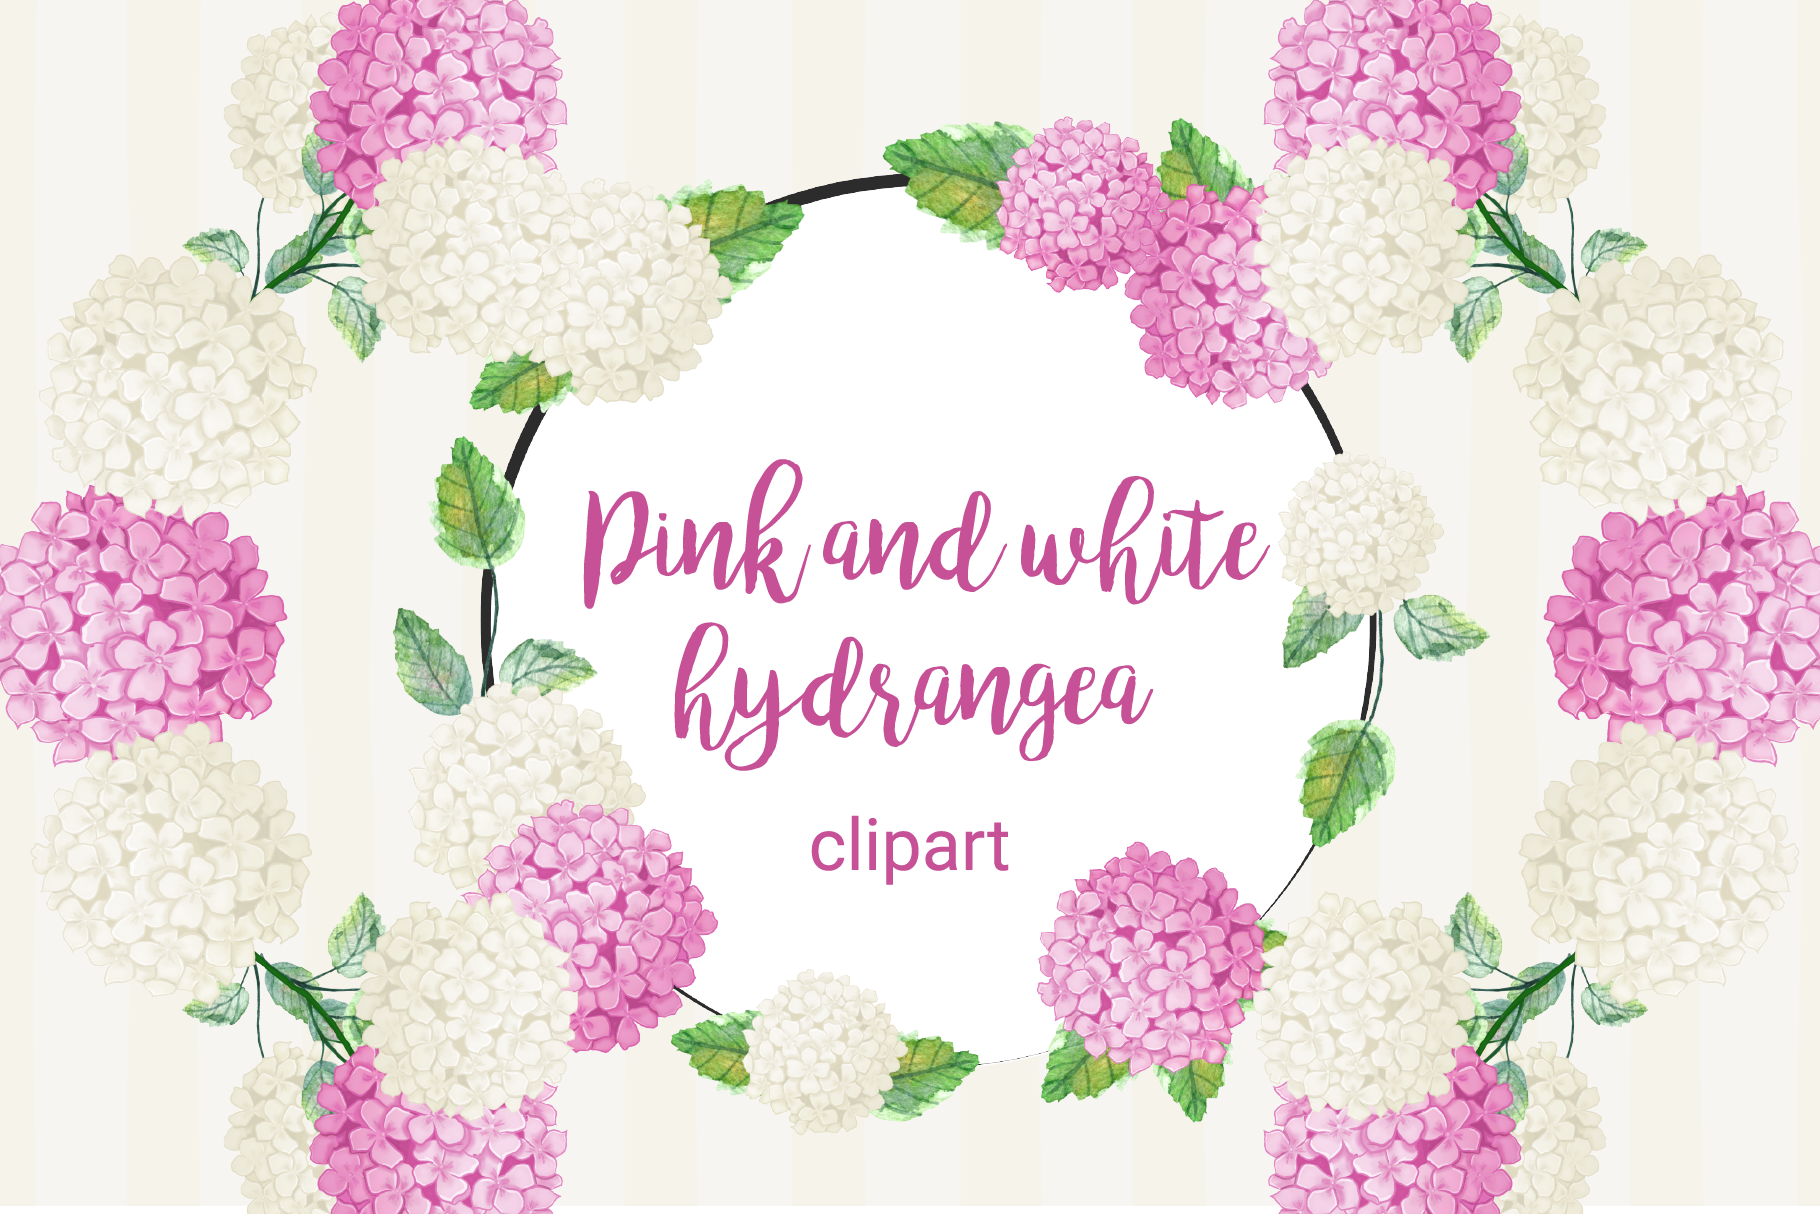 Pink hydrangea clipart jpg download Pink and white hydrangea Clipart jpg download